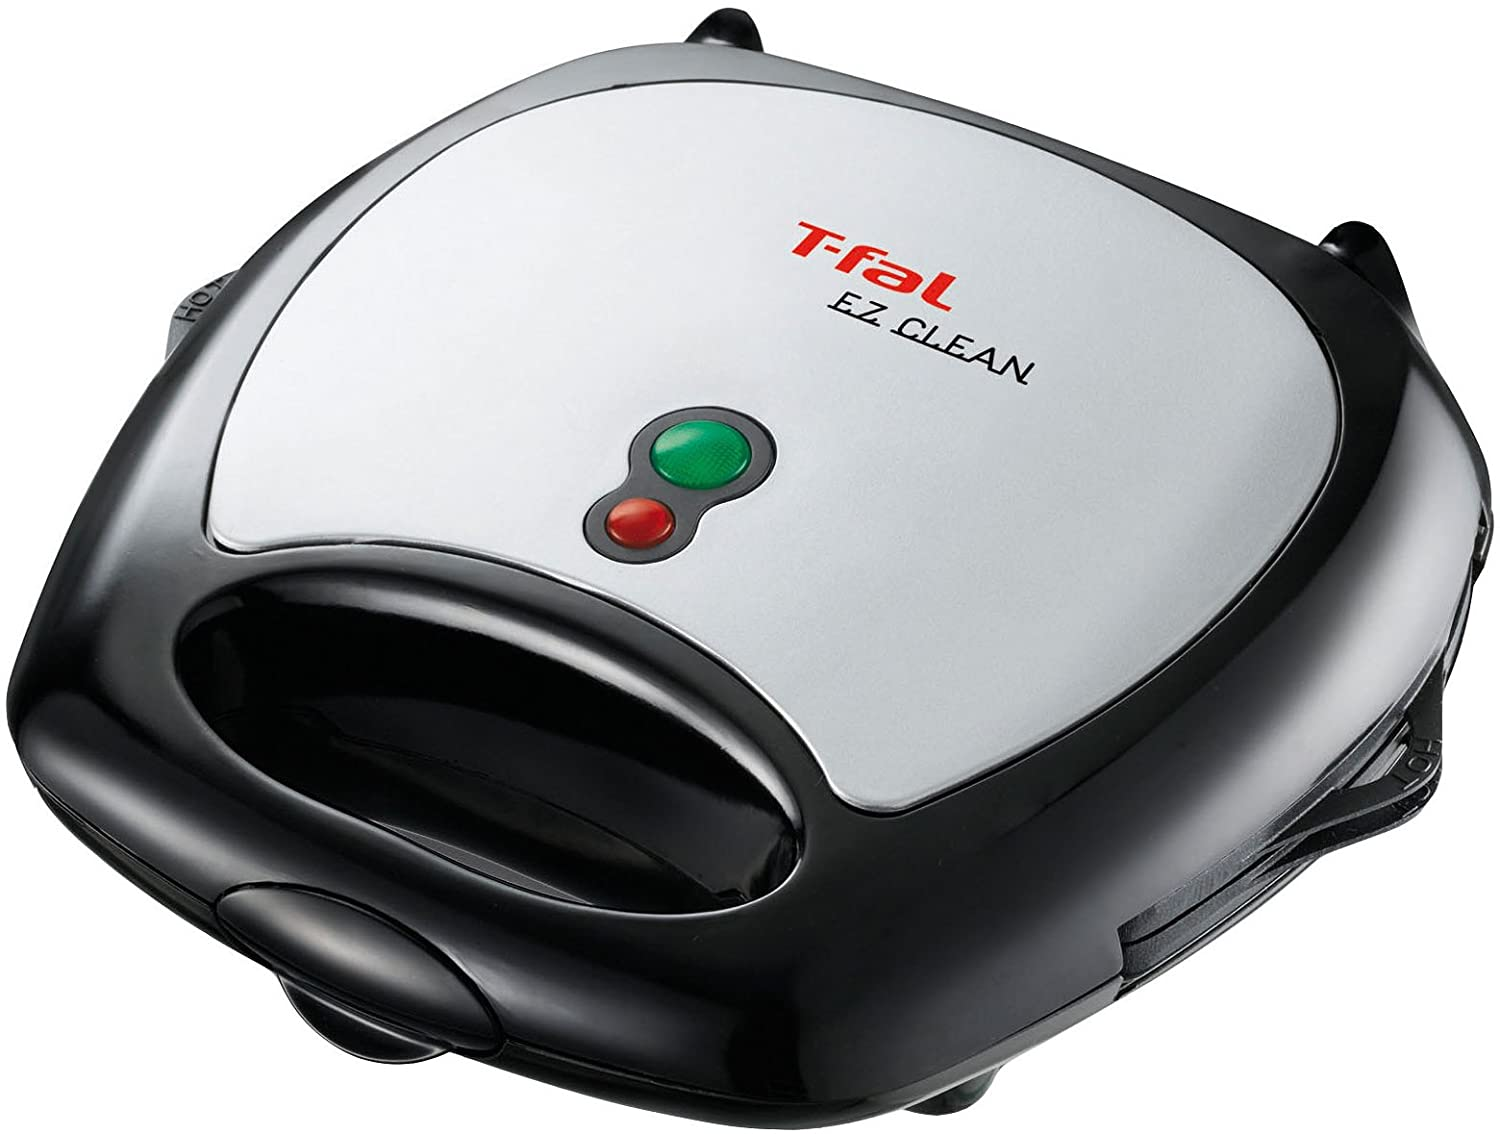 T-Fal EZ Clean Non-Stick Sandwich And Waffle Maker Render